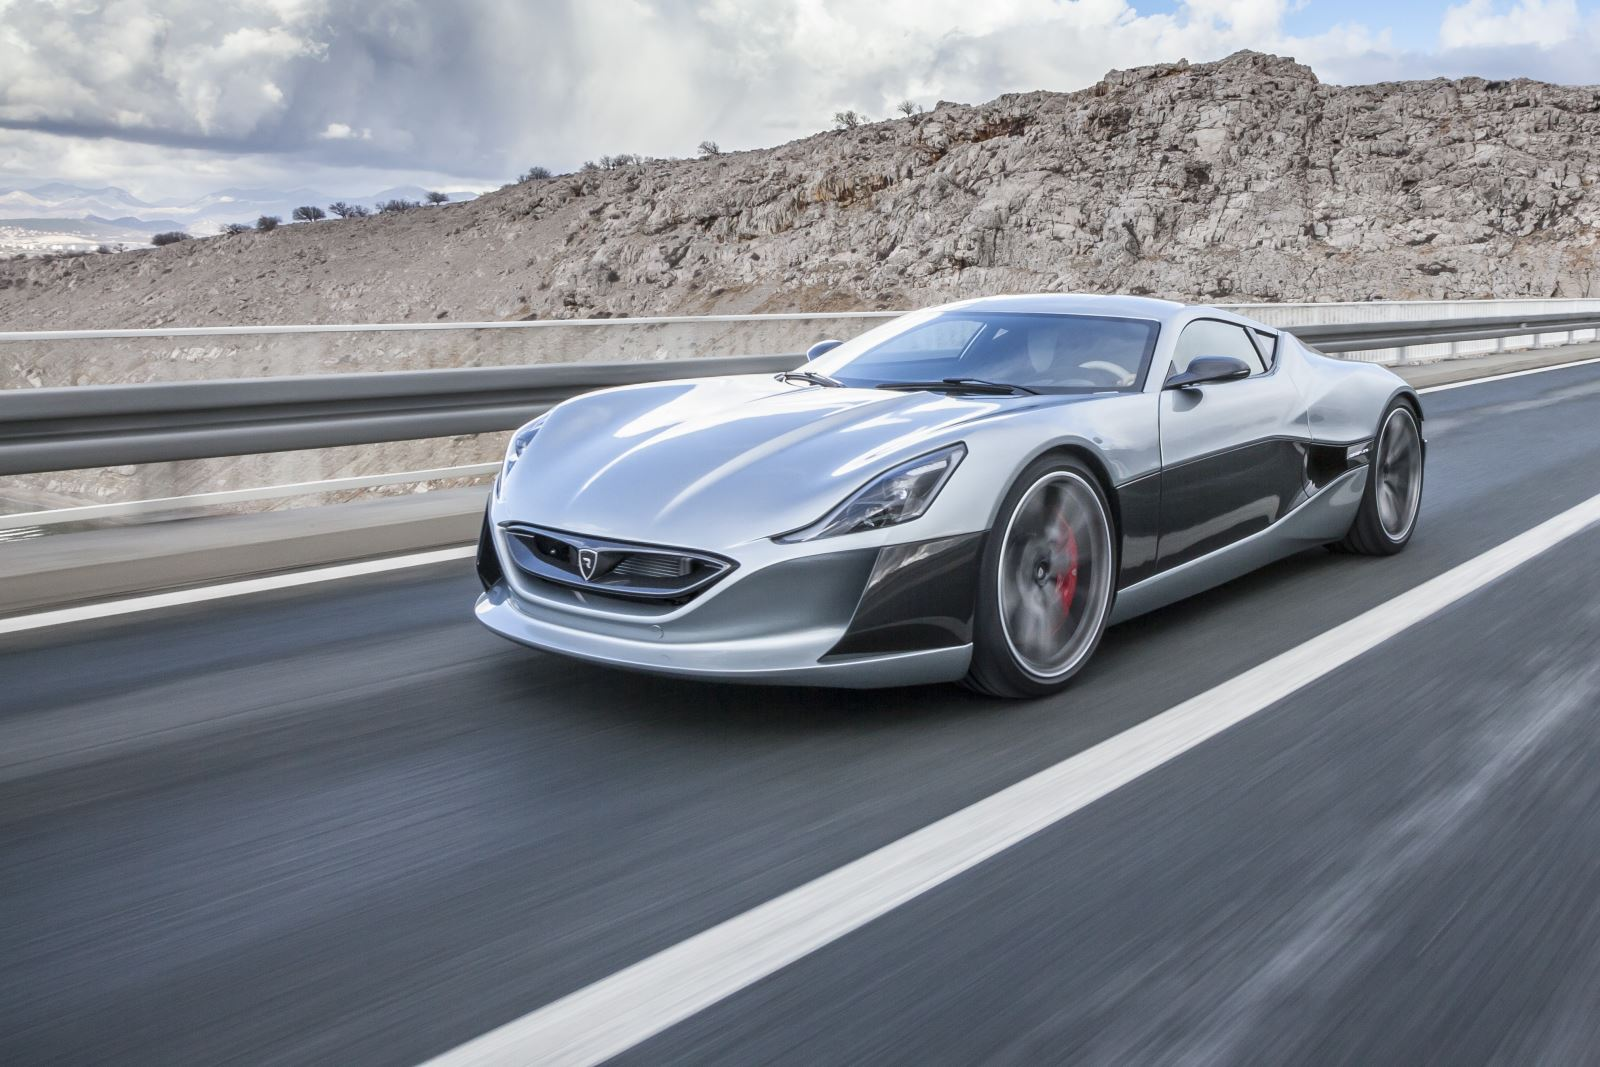 The Concept_One (photo: Rimac Automobili)